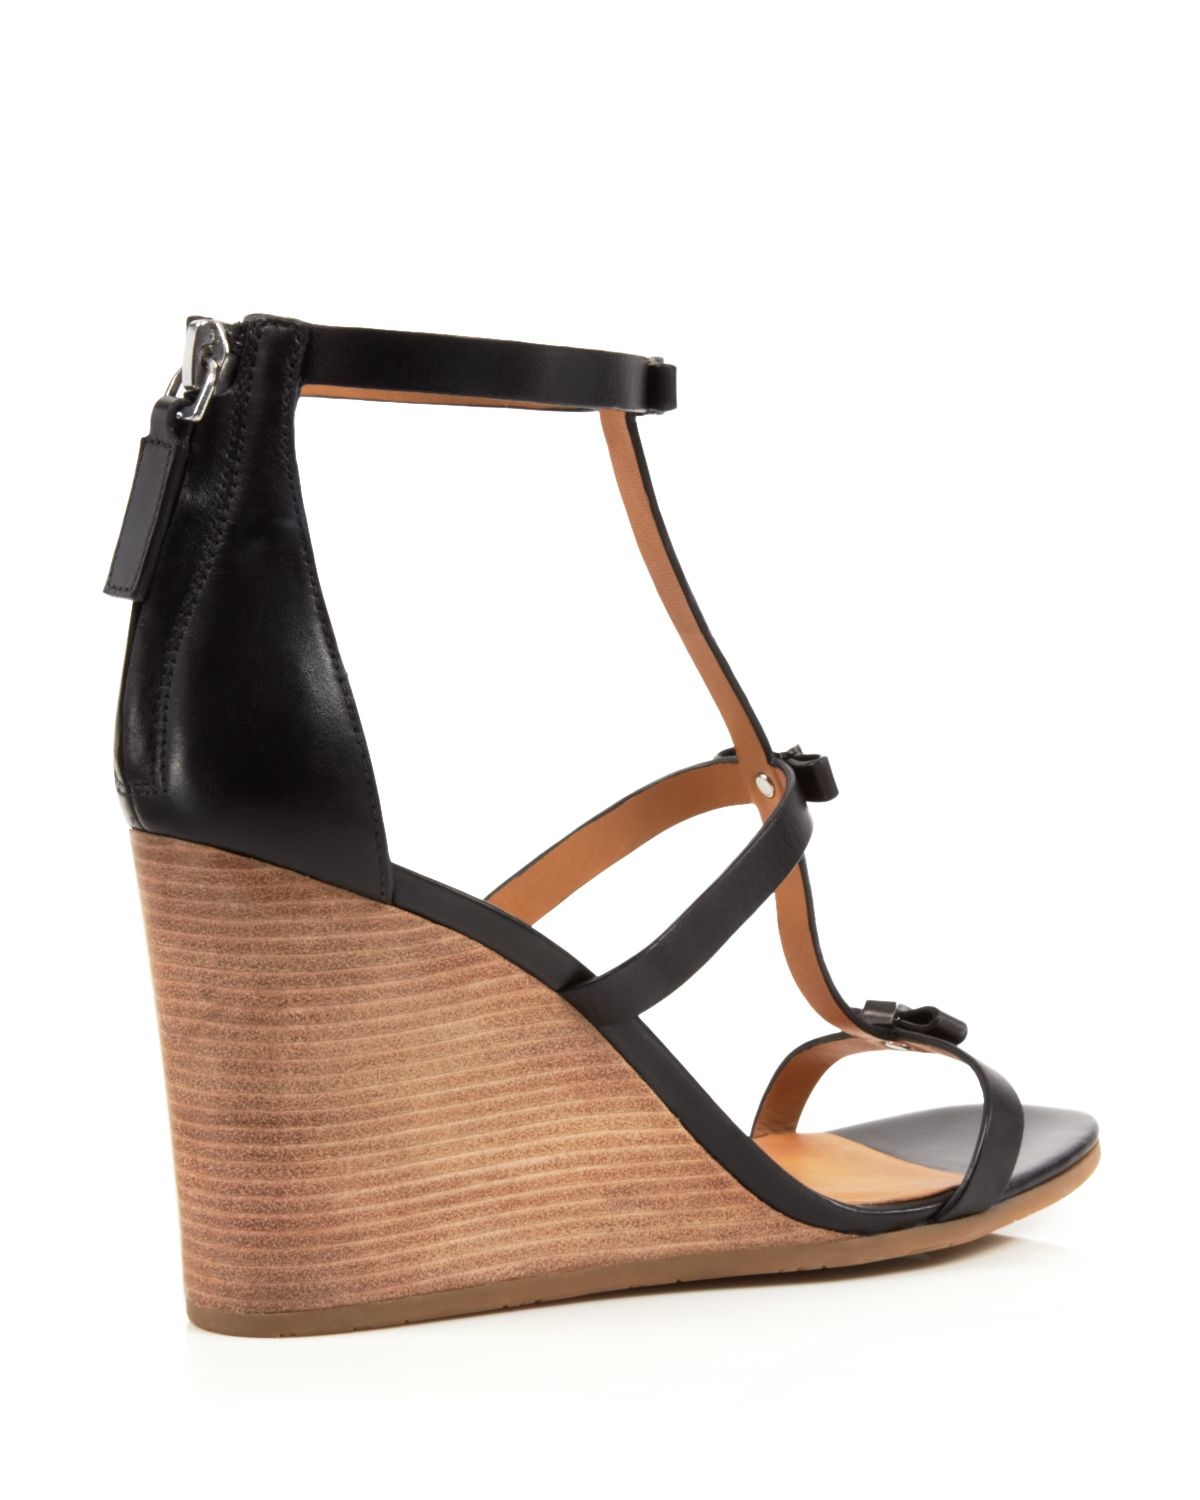 Marc by Marc Jacobs Sandali CUBE BOW SANDAL Marc by Marc Jacobs otgy1bg